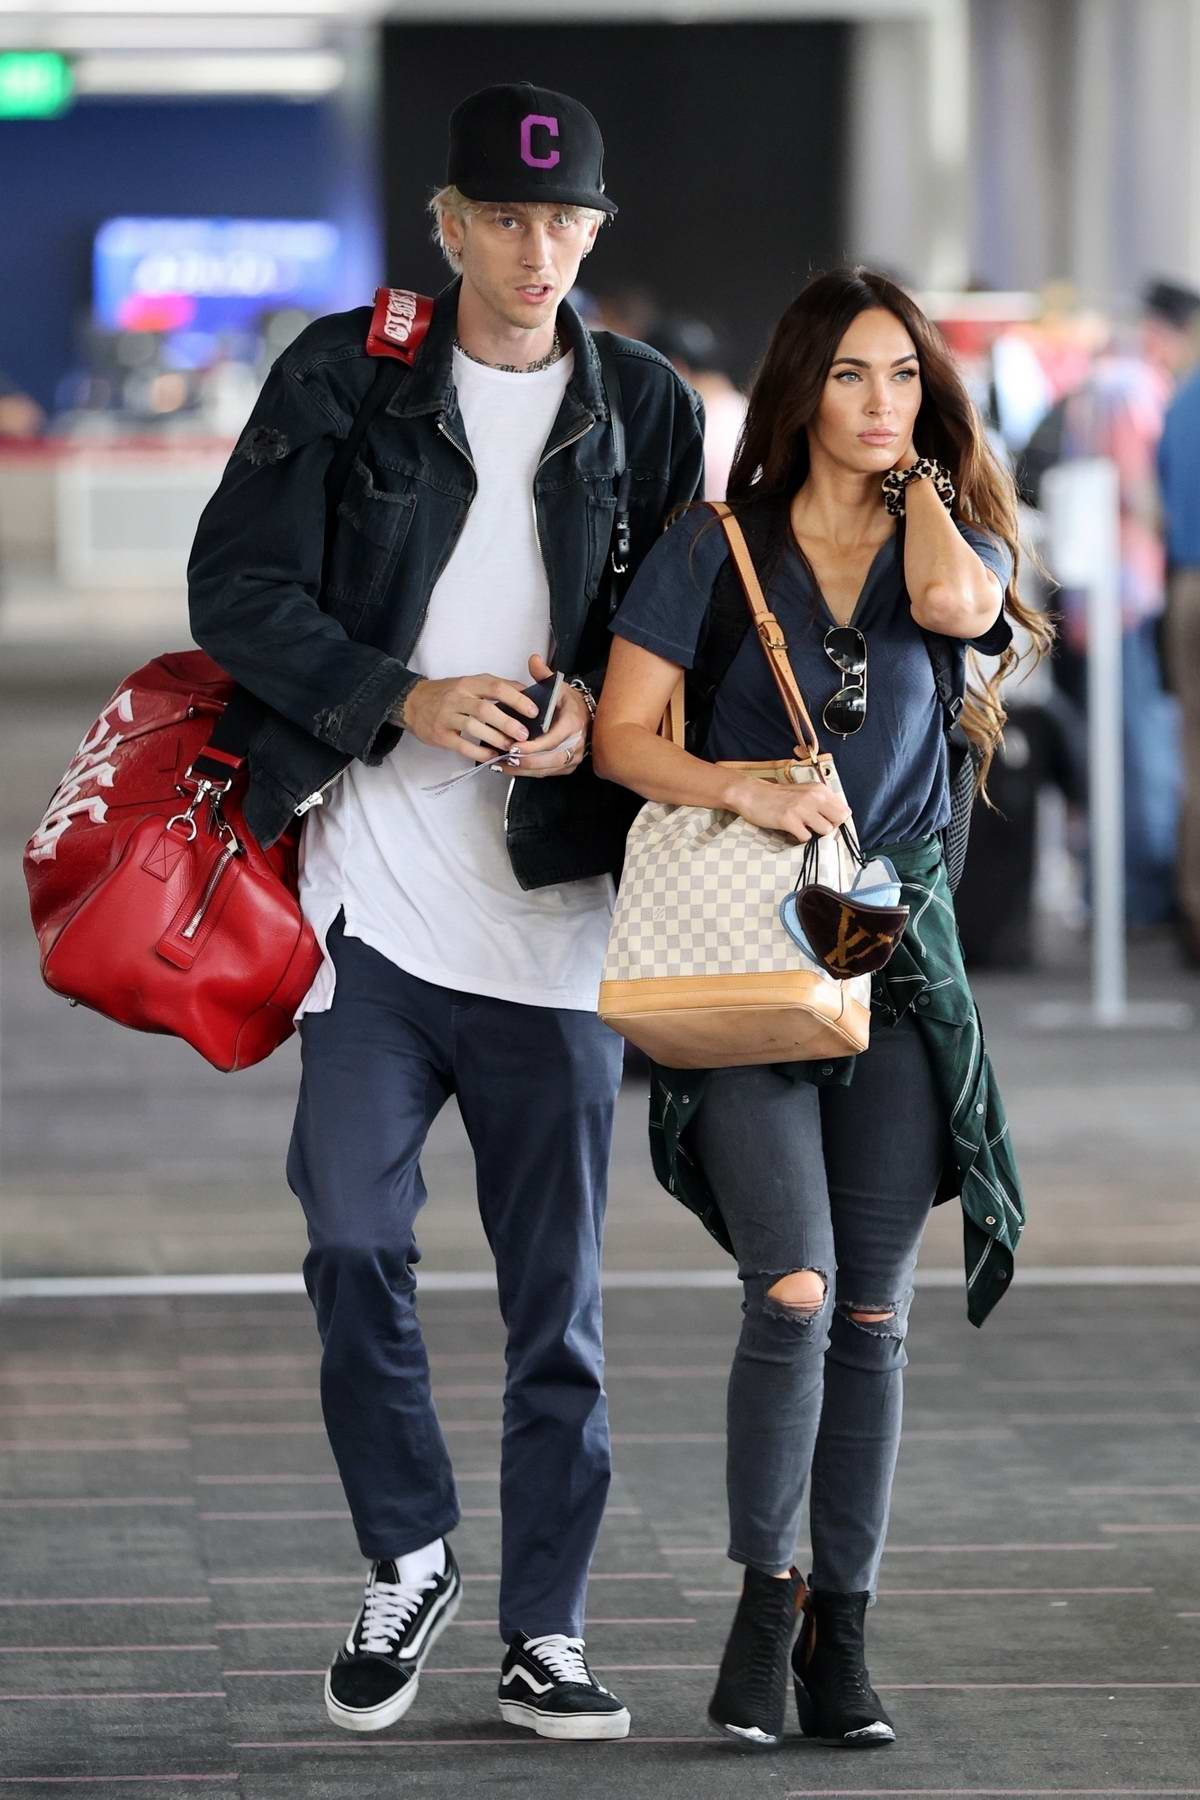 Megan Fox and Machine Gun Kelly are seen arriving at LAX airport in Los Angeles